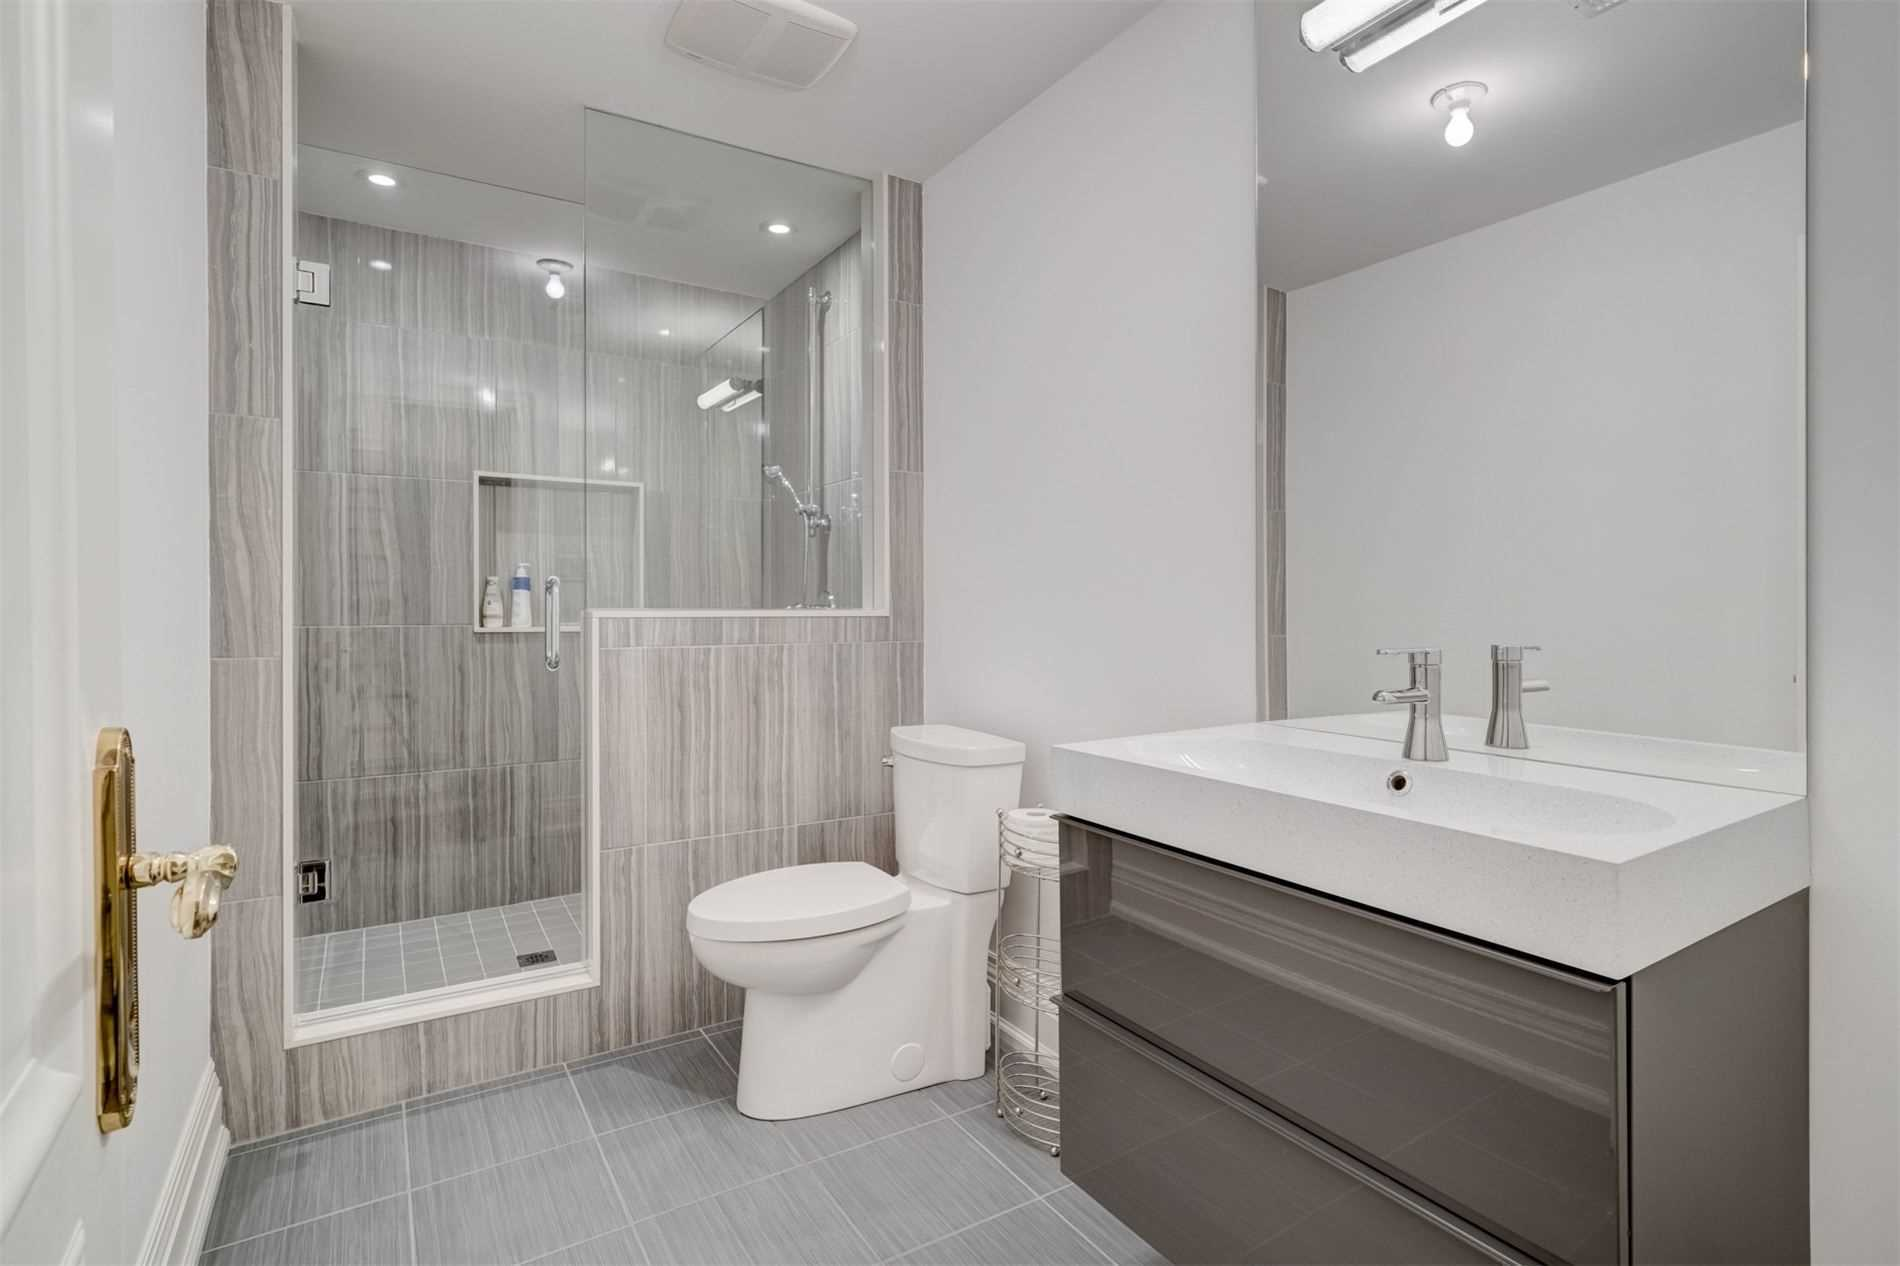 Detached house For Sale In Toronto - 191 Montclair Ave, Toronto, Ontario, Canada M5P1R1 , 4 Bedrooms Bedrooms, ,7 BathroomsBathrooms,Detached,For Sale,Montclair